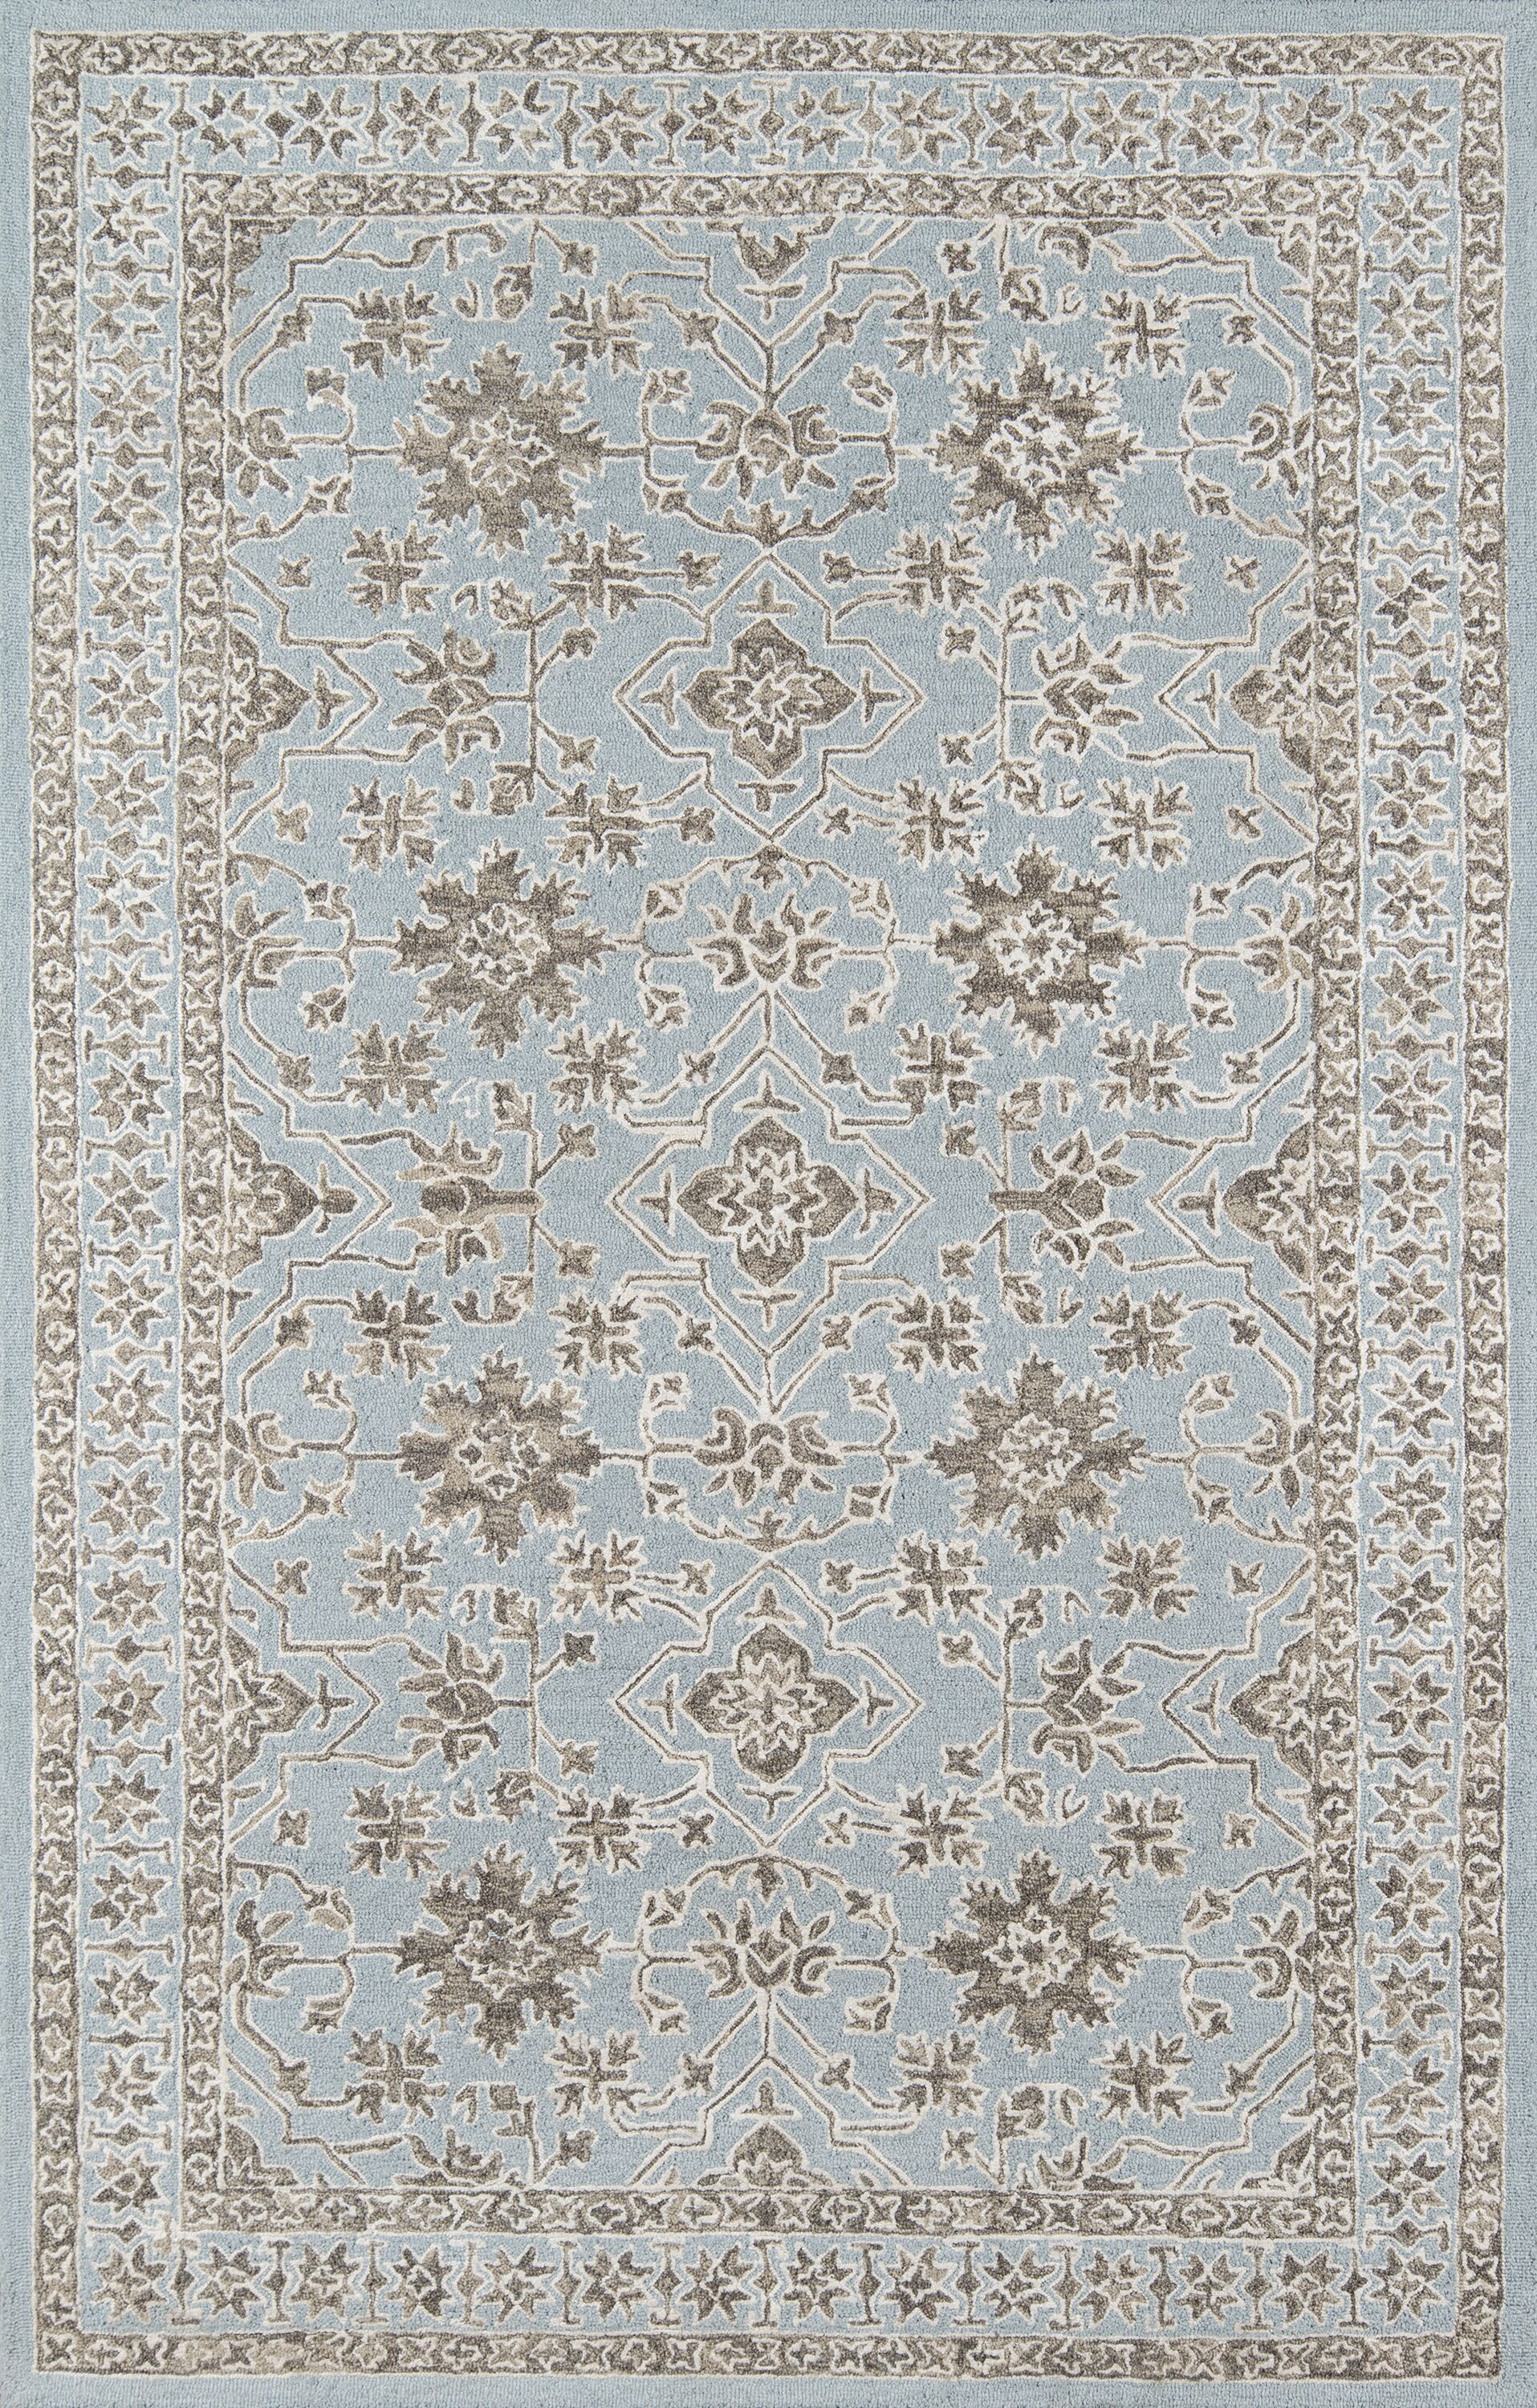 Paisley Hand-Tufted Blue Area Rug Rug Size: Rectangle 9' x 12'